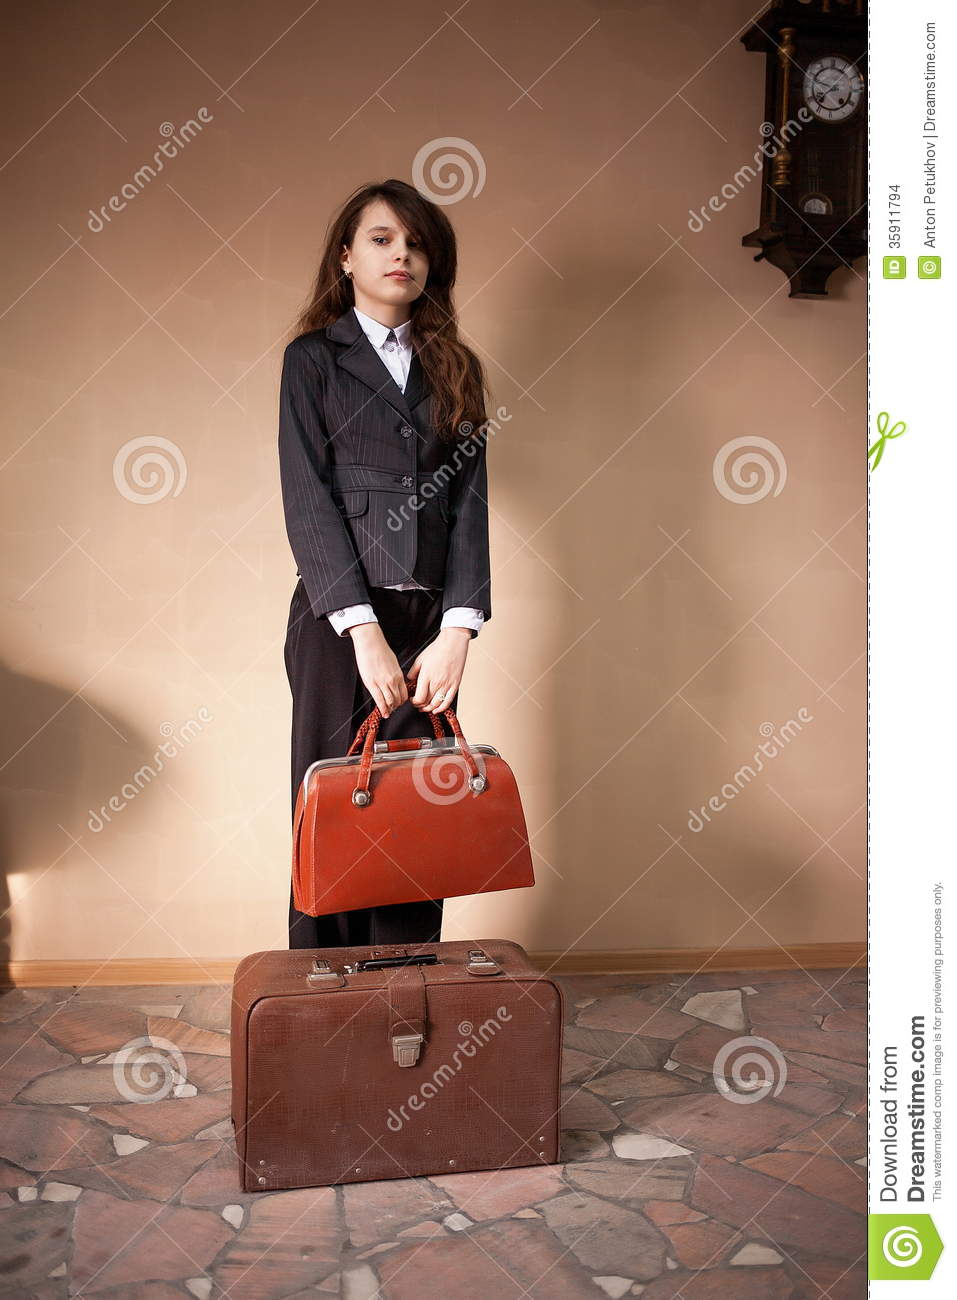 Girl Bag And Suitcase Stock Image